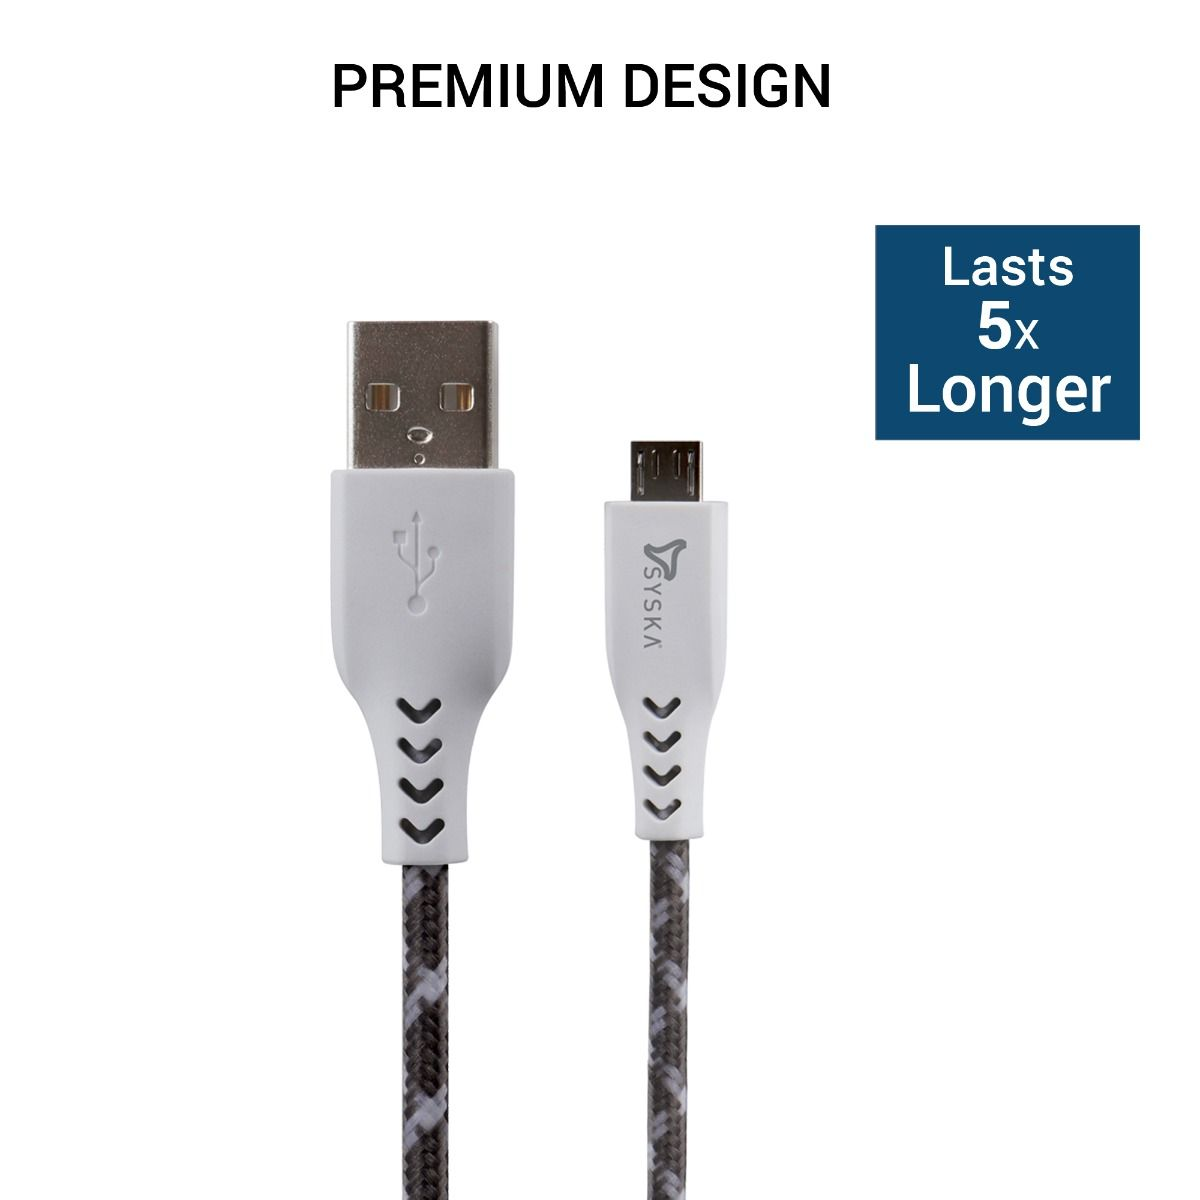 Fastlink Type-C Charging Cable CCCA30